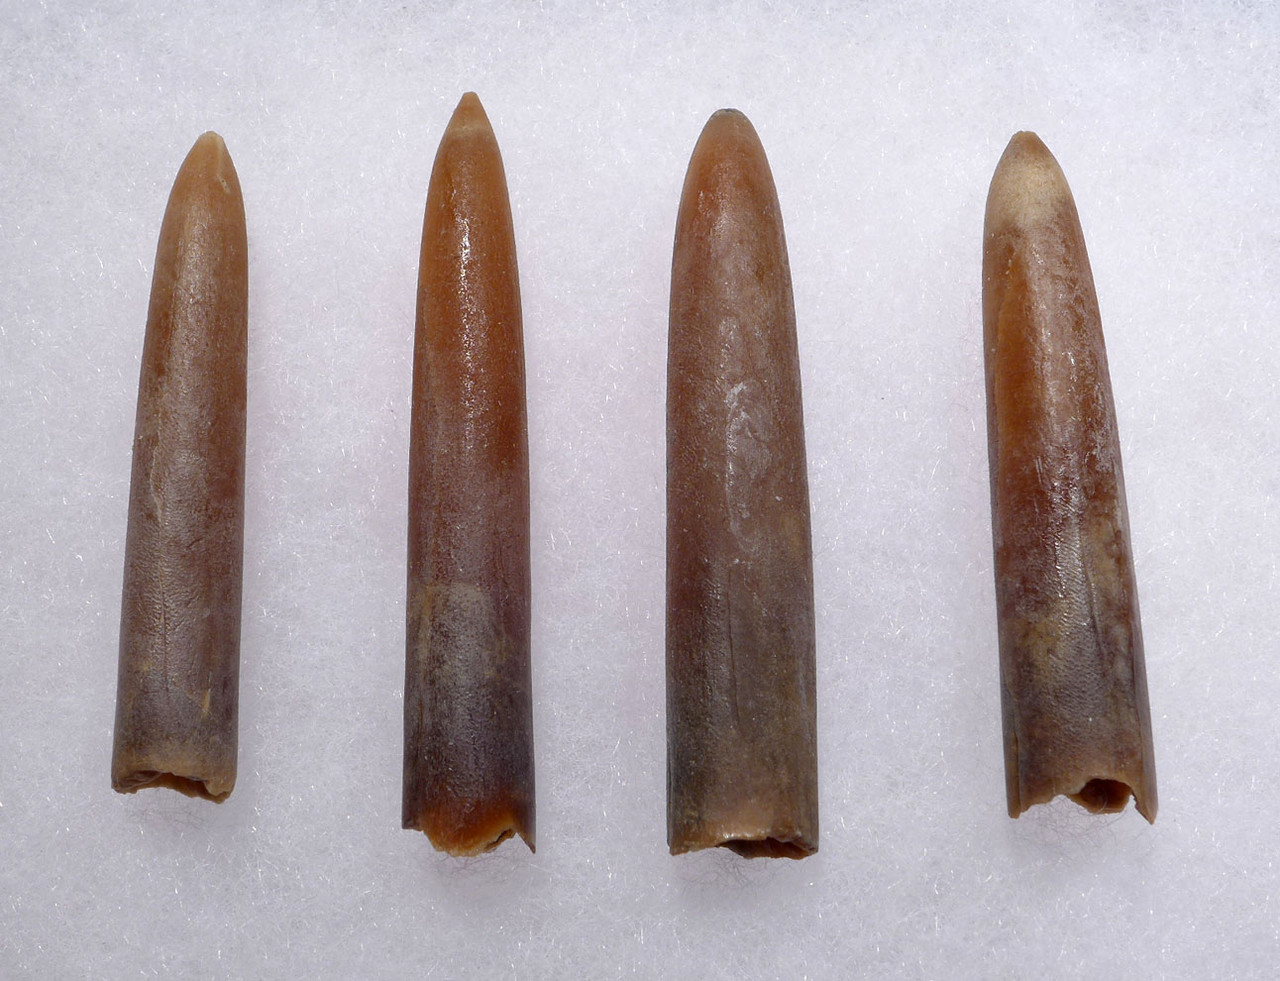 FOUR DINOSAUR ERA BELEMNITE FOSSILS OF GONIOTEUTHIS OF SOLID TRANSLUCENT CALCITE *BEL110